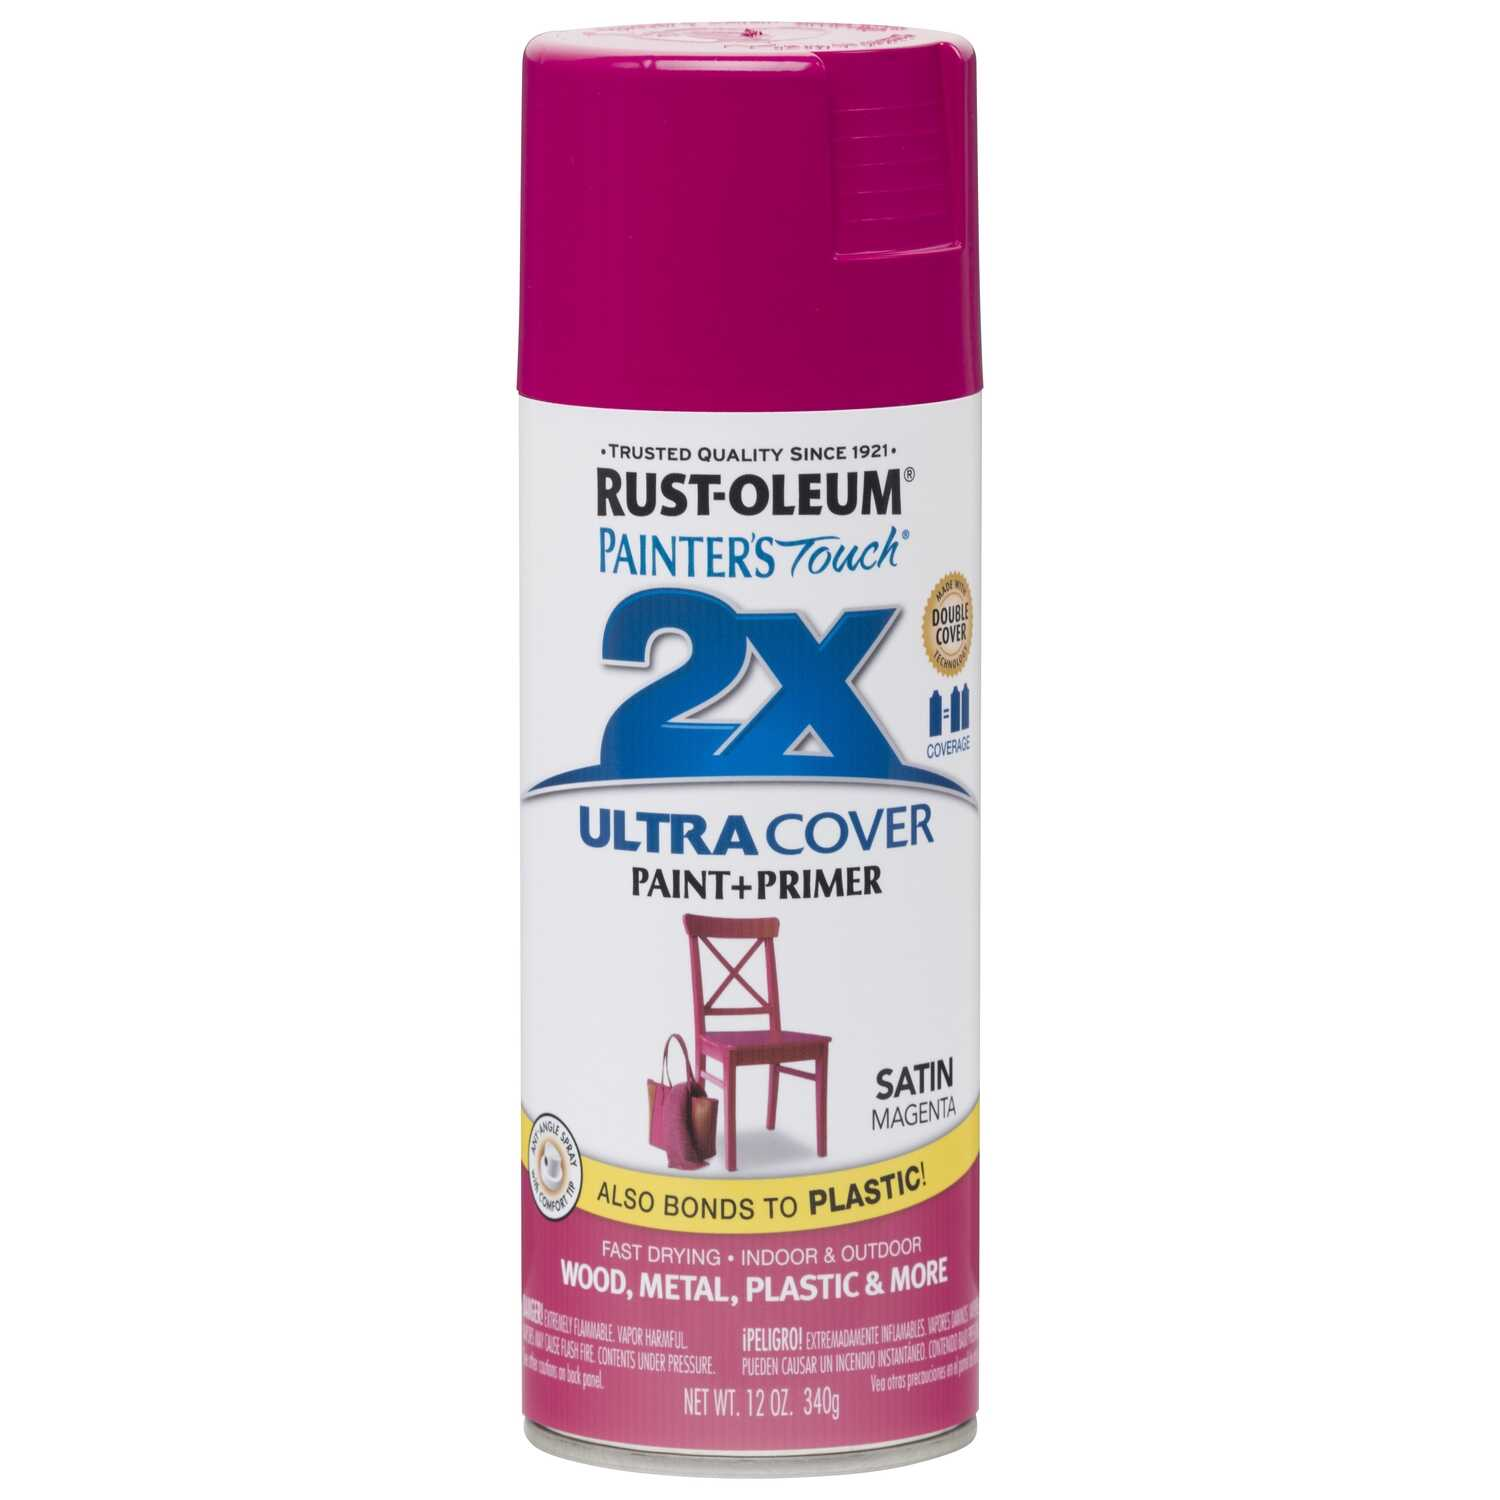 Rust-Oleum  Painter's Touch Ultra Cover  Satin  Magenta  Spray Paint  12 oz.